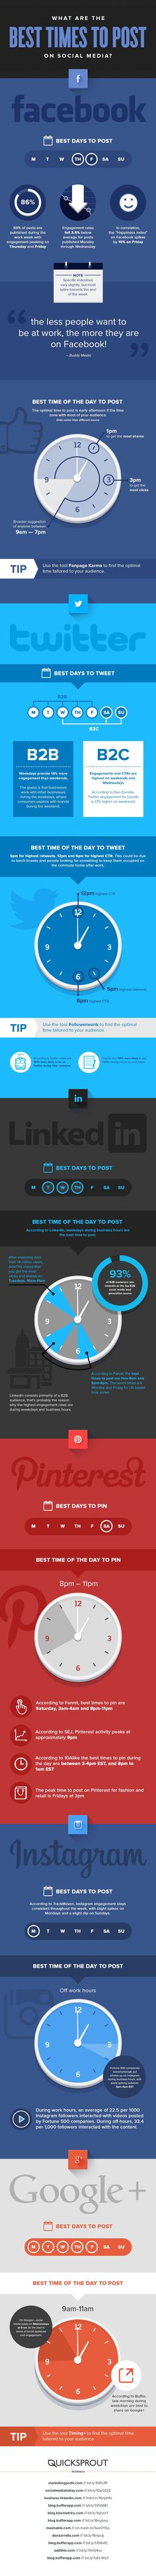 Best Times to Post on Social Media including tools to analyse your followers.